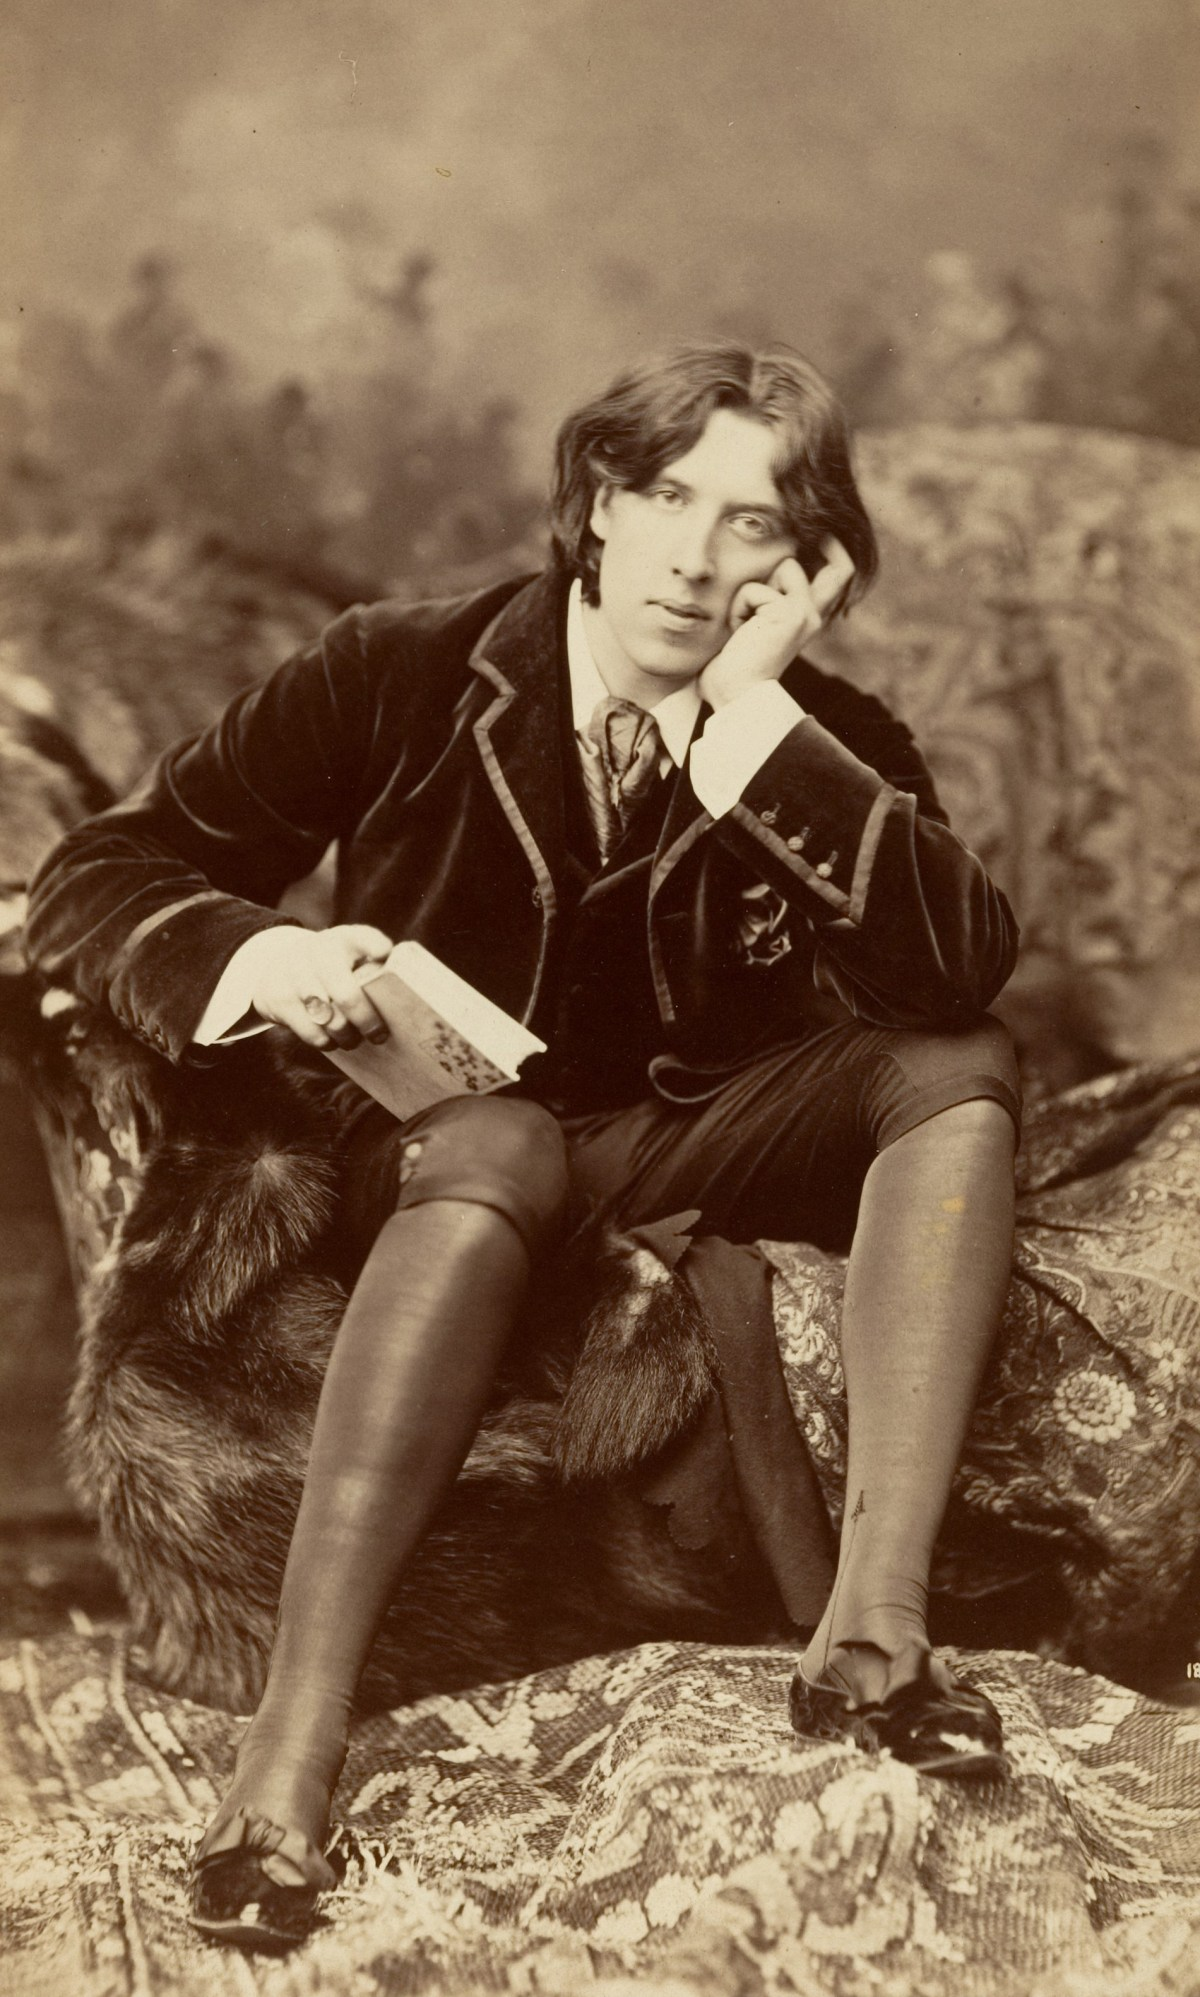 Oscar Wilde, seated, wears a velvet jacket, hose, and breeches. He holds a book and gazes at the camera.